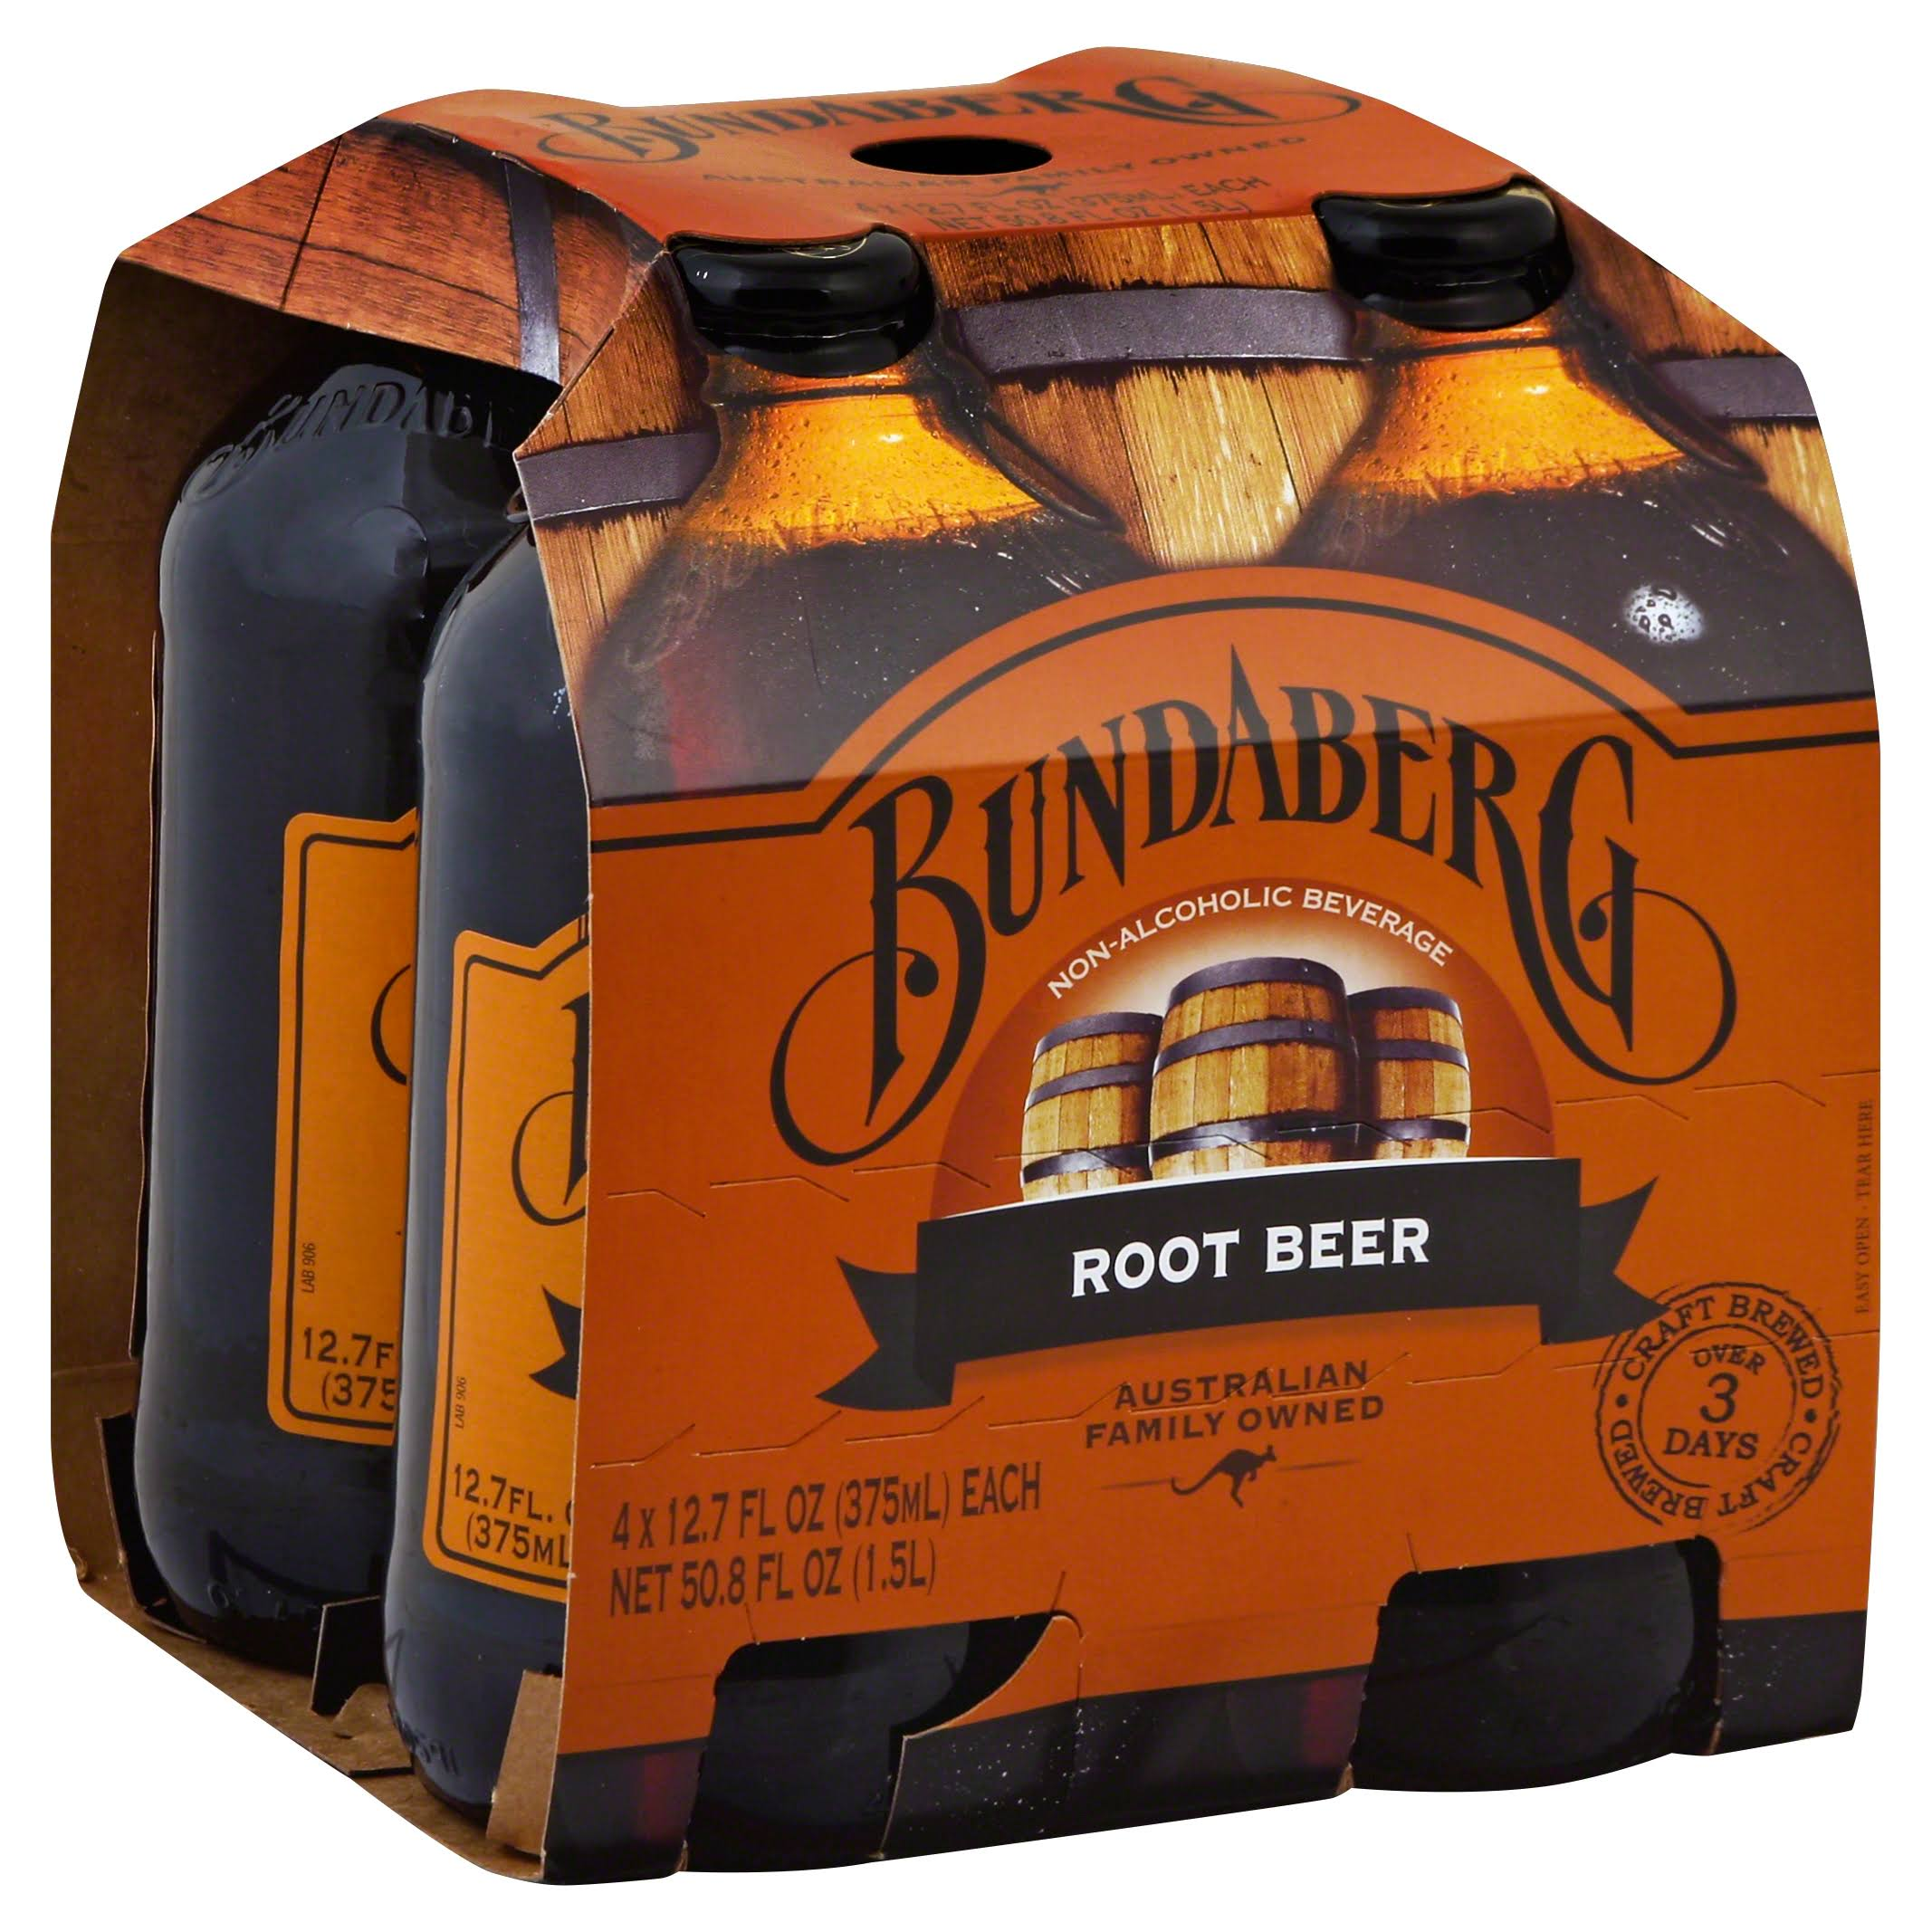 Bundaberg Root Beer - 4 pack, 12.7 fl oz bottles